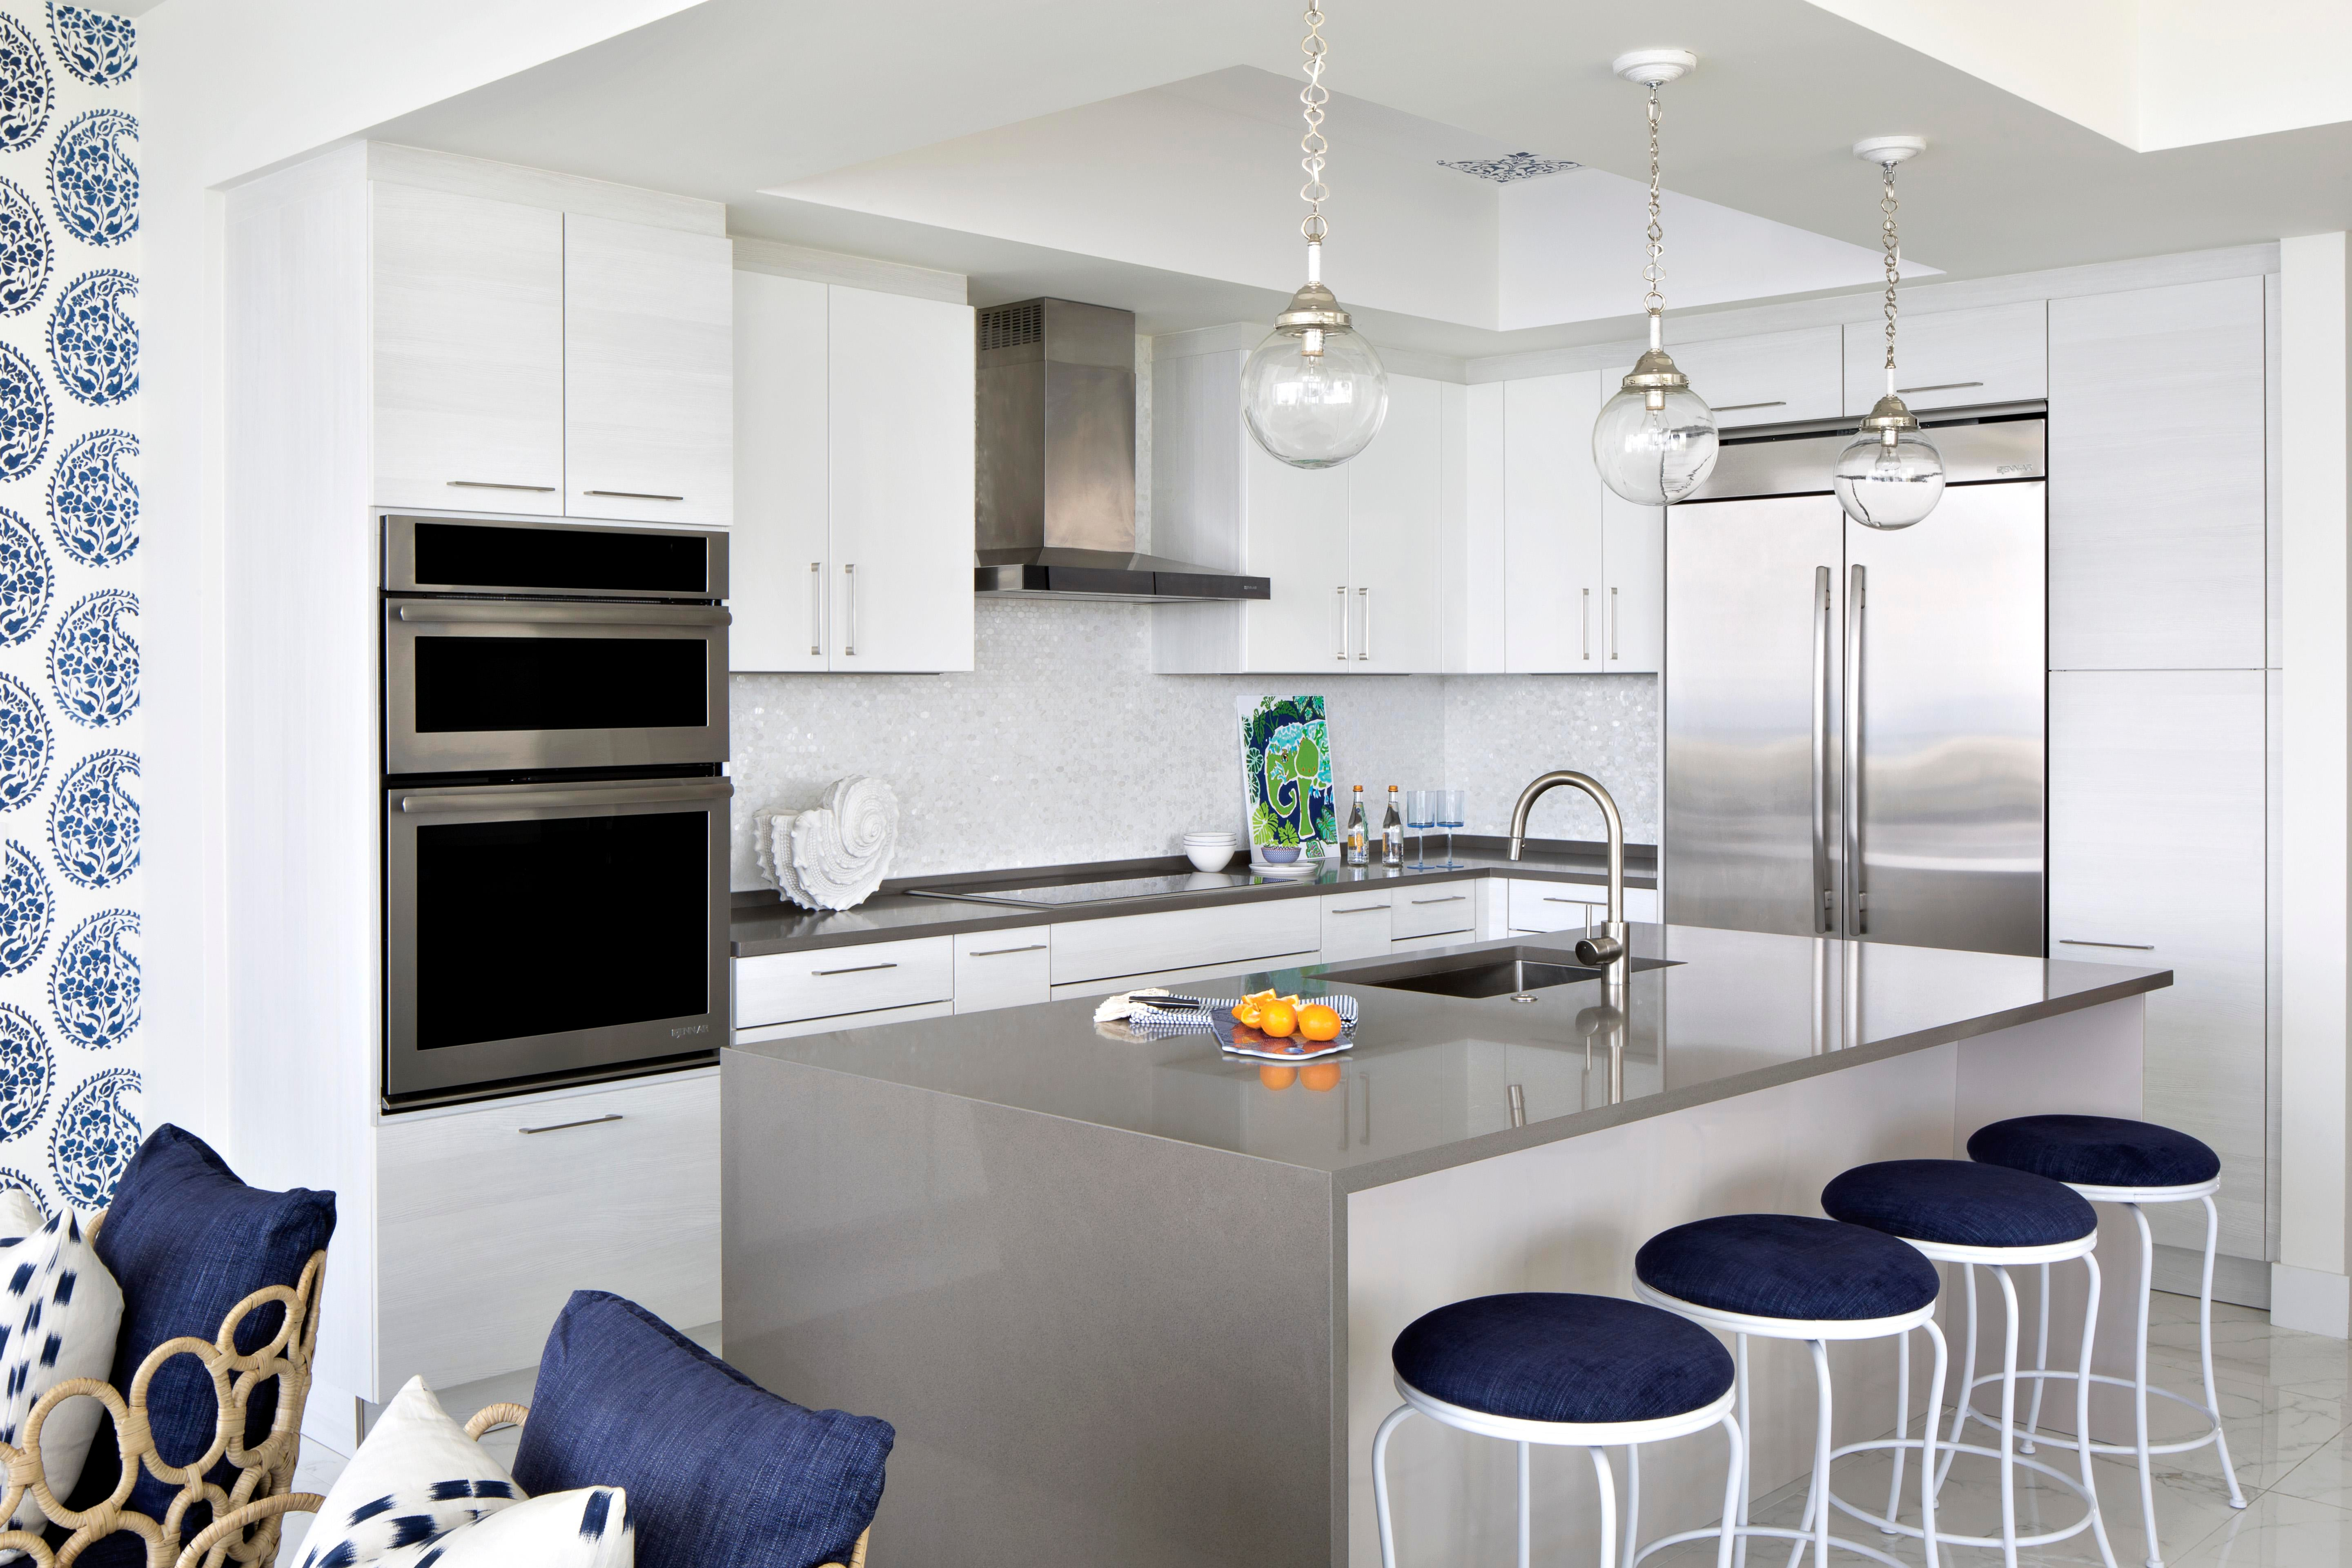 Oceanside Retreat Vacation Residence Kitchen Contemporary Eclectic Coastal  By Lisa Michael Interiors